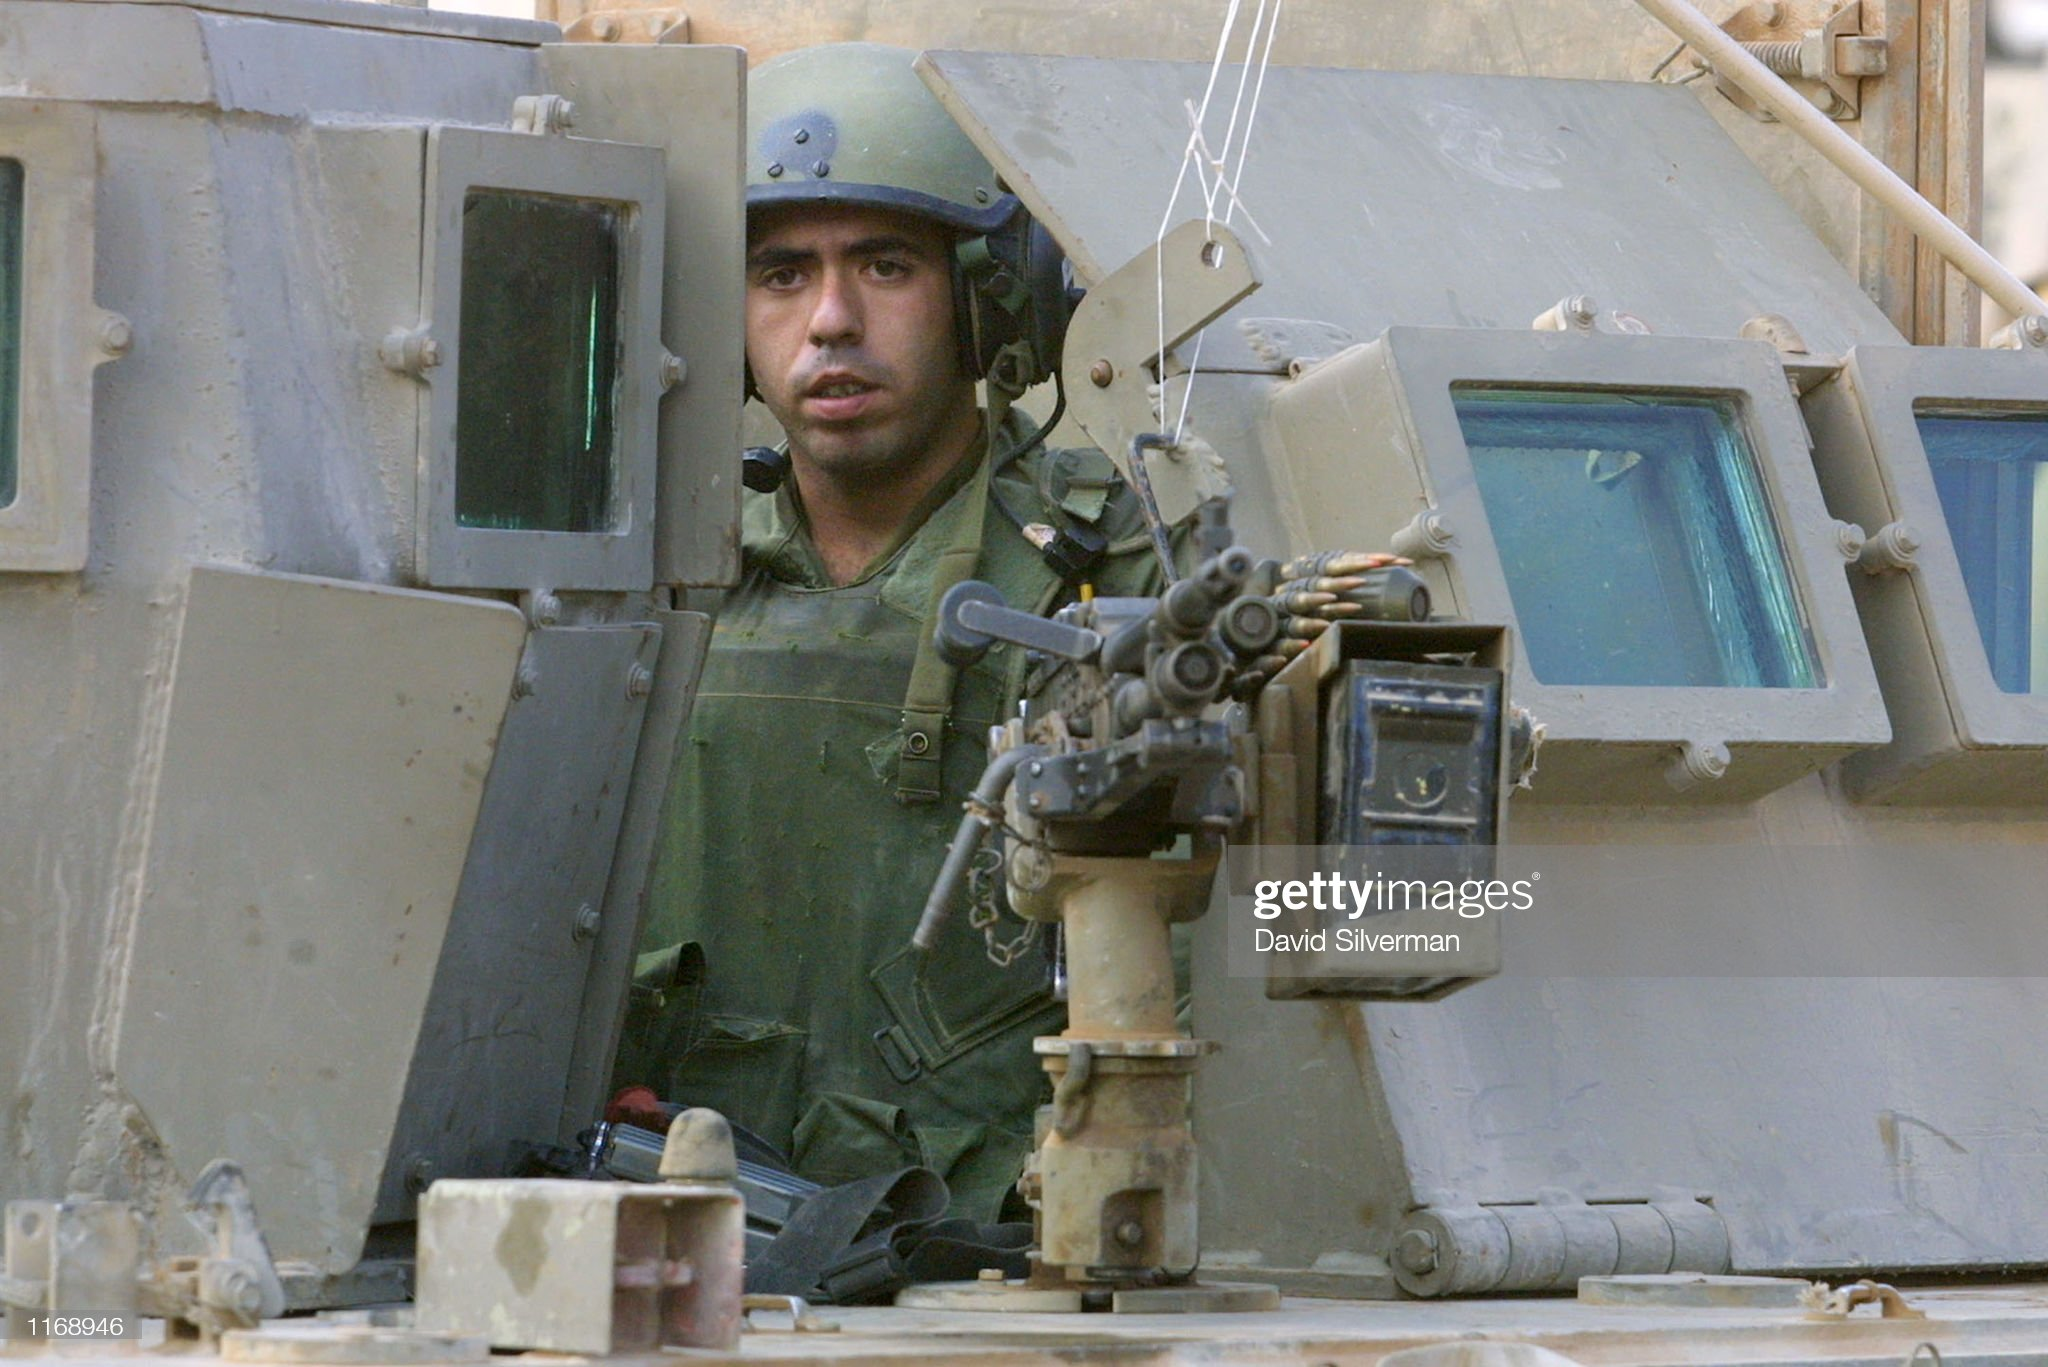 https://media.gettyimages.com/photos/an-israeli-soldier-mans-a-machine-gun-on-an-armored-personnel-carrier-picture-id1168946?s=2048x2048